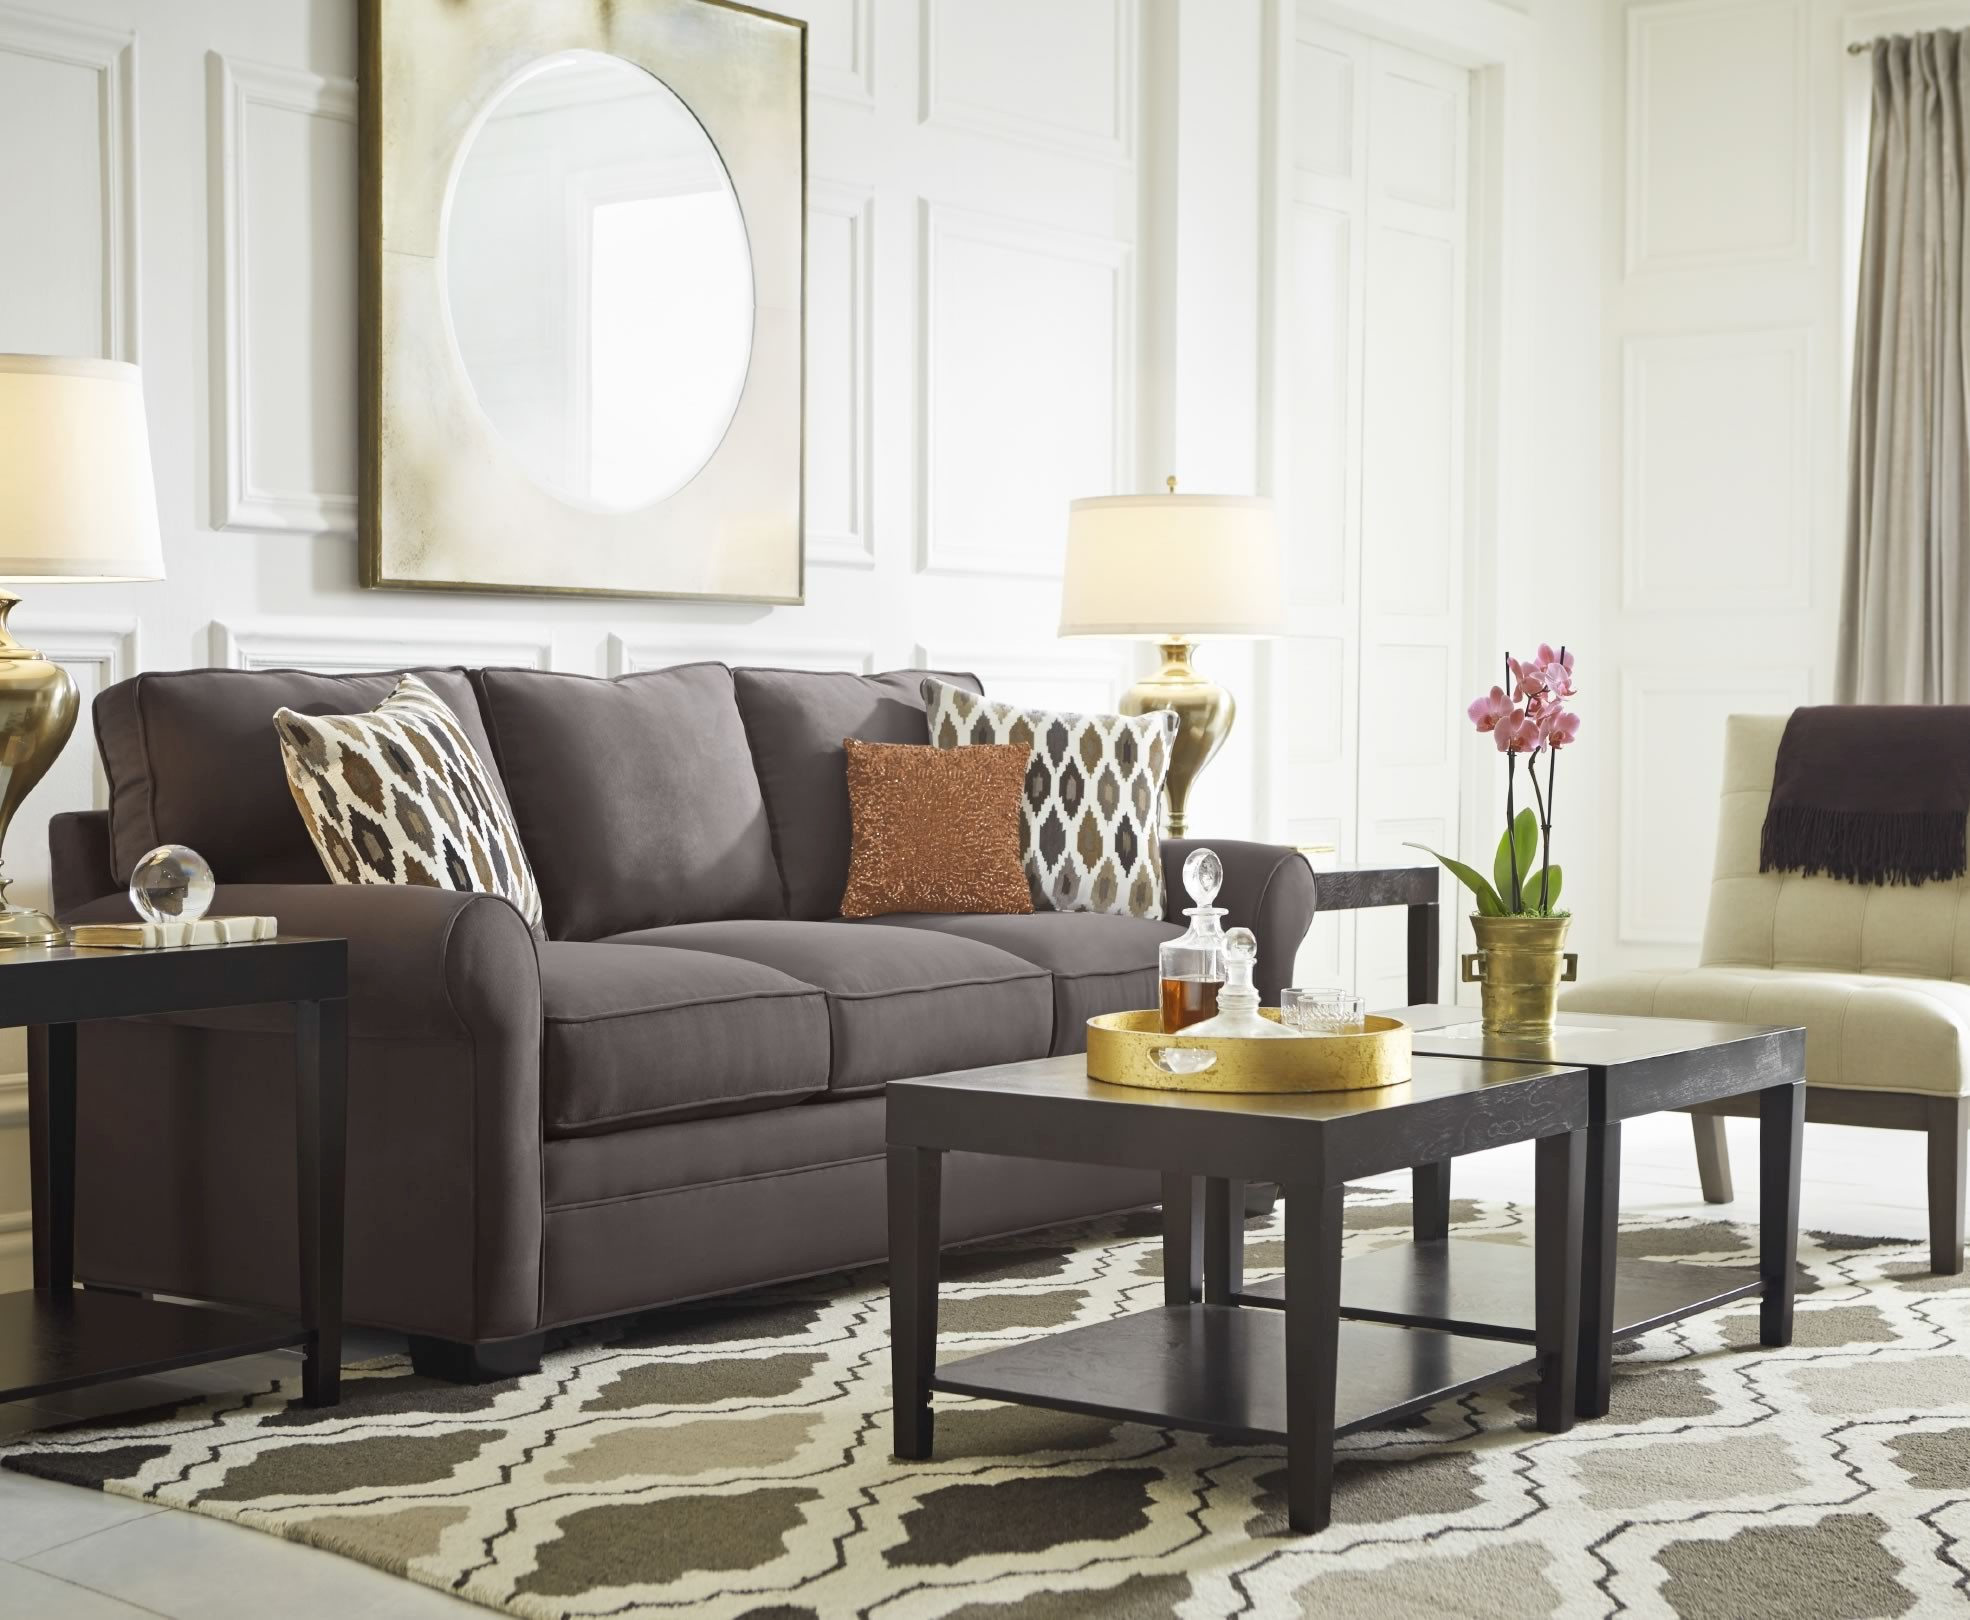 Rooms to Go sofa Sets Fascinating Rooms to Go Discount sofa Guide Affordable sofas Couches Concept